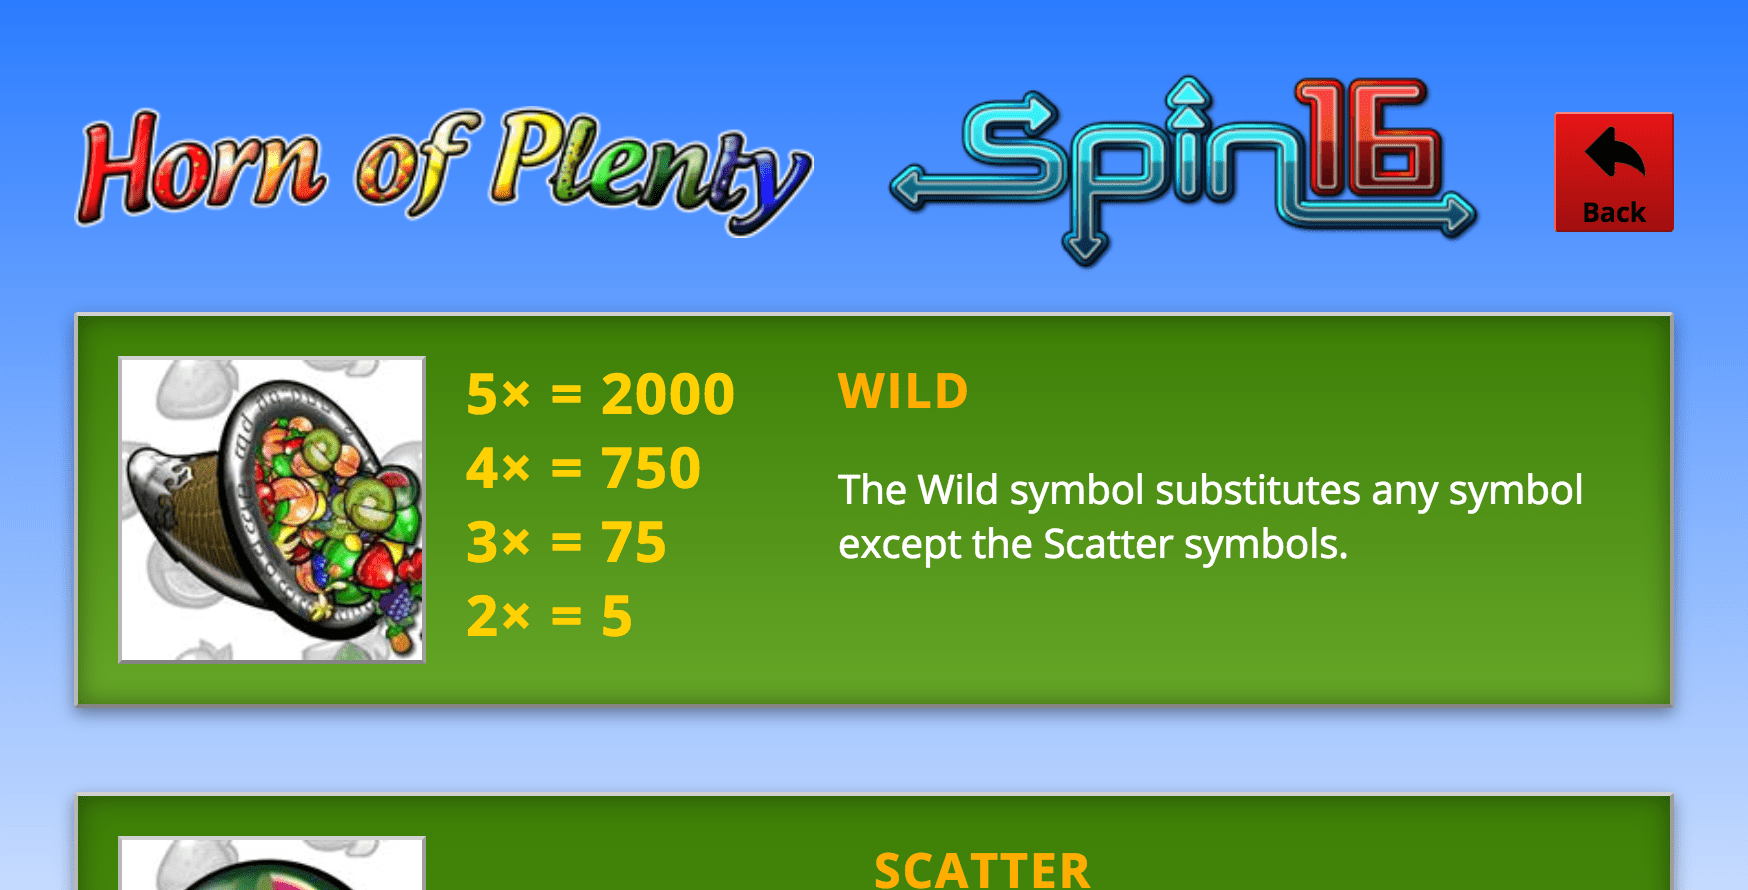 horn of plenty spin 16 online game help